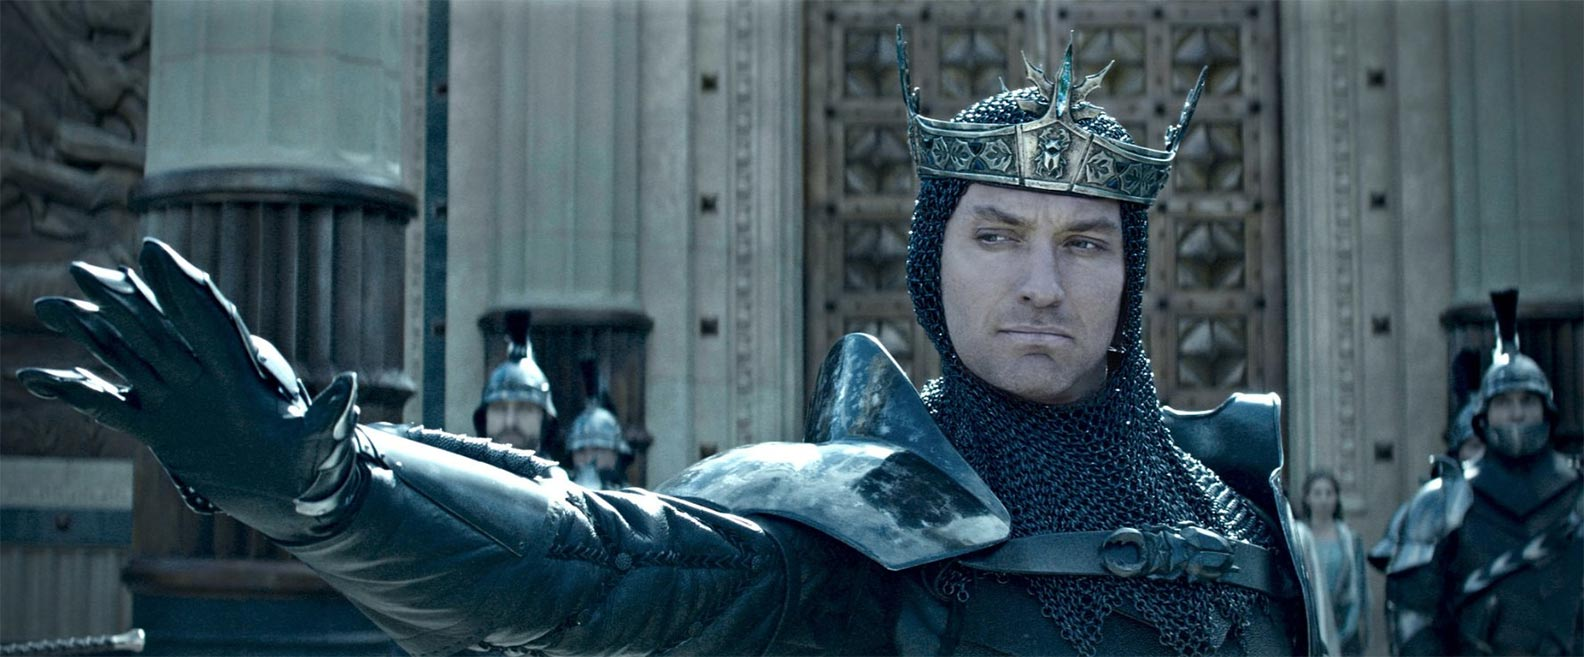 King Arthur: Legend of the Sword Trailer Screencap